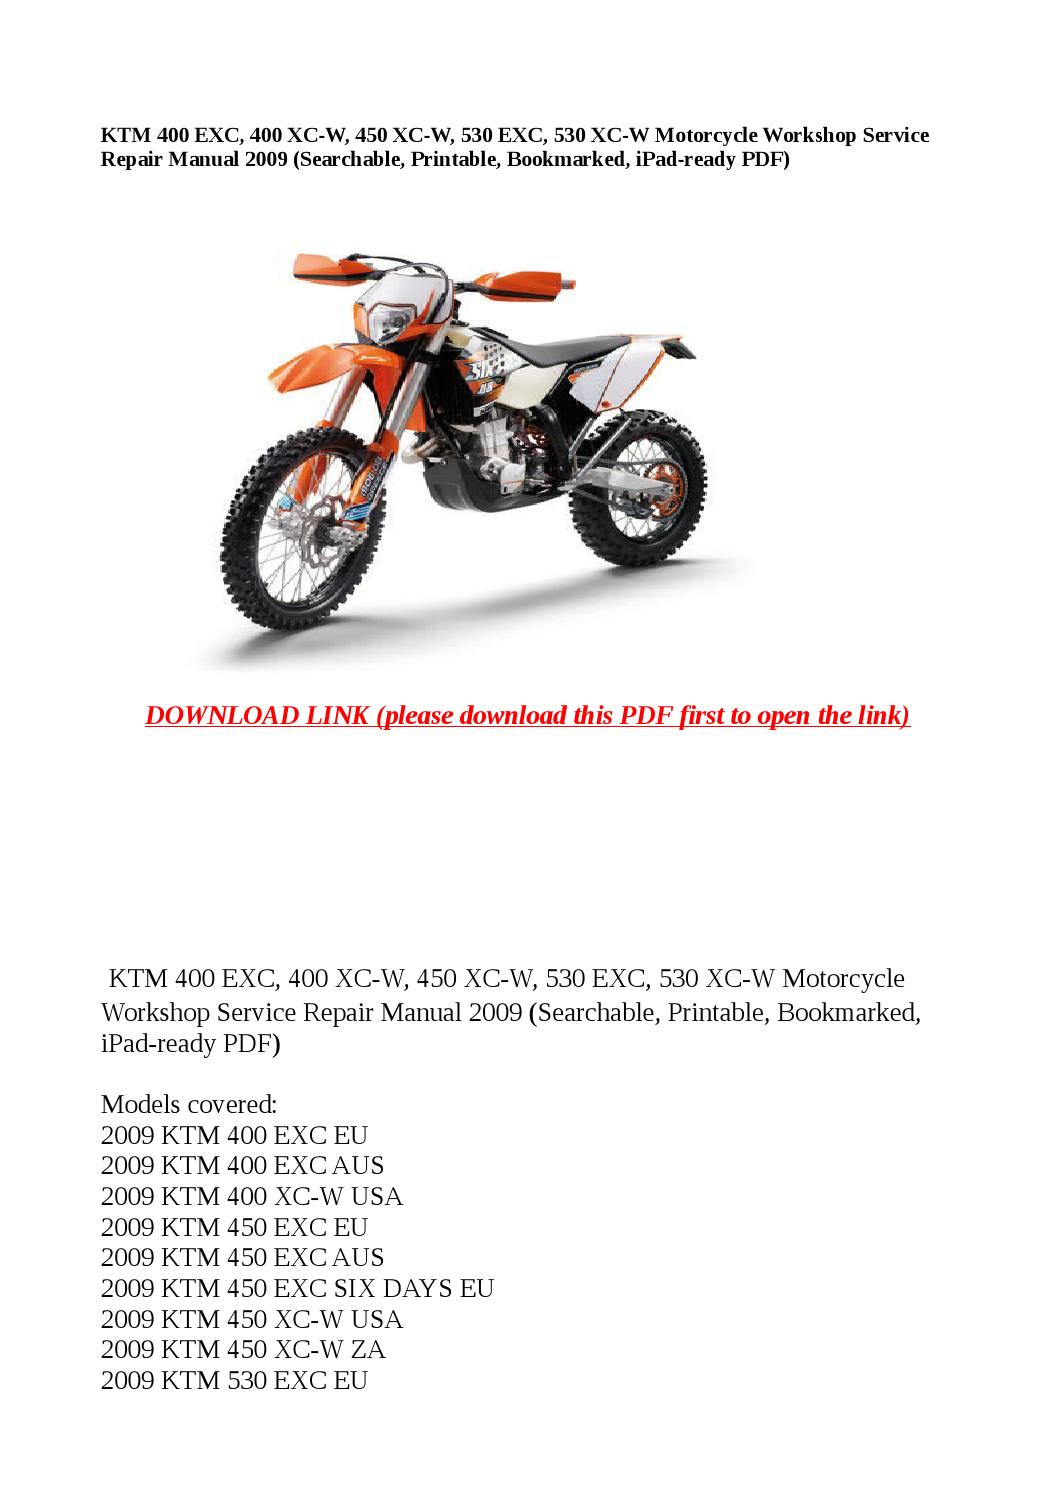 Ktm 450 Repair Manual 2013 Xc W Wiring Diagram Improve Experience Aid Analyze Typical Pattern Visitors Looking Cyclepedia An Officially Licensed Authorized Distributor Legacy Owners Moto List